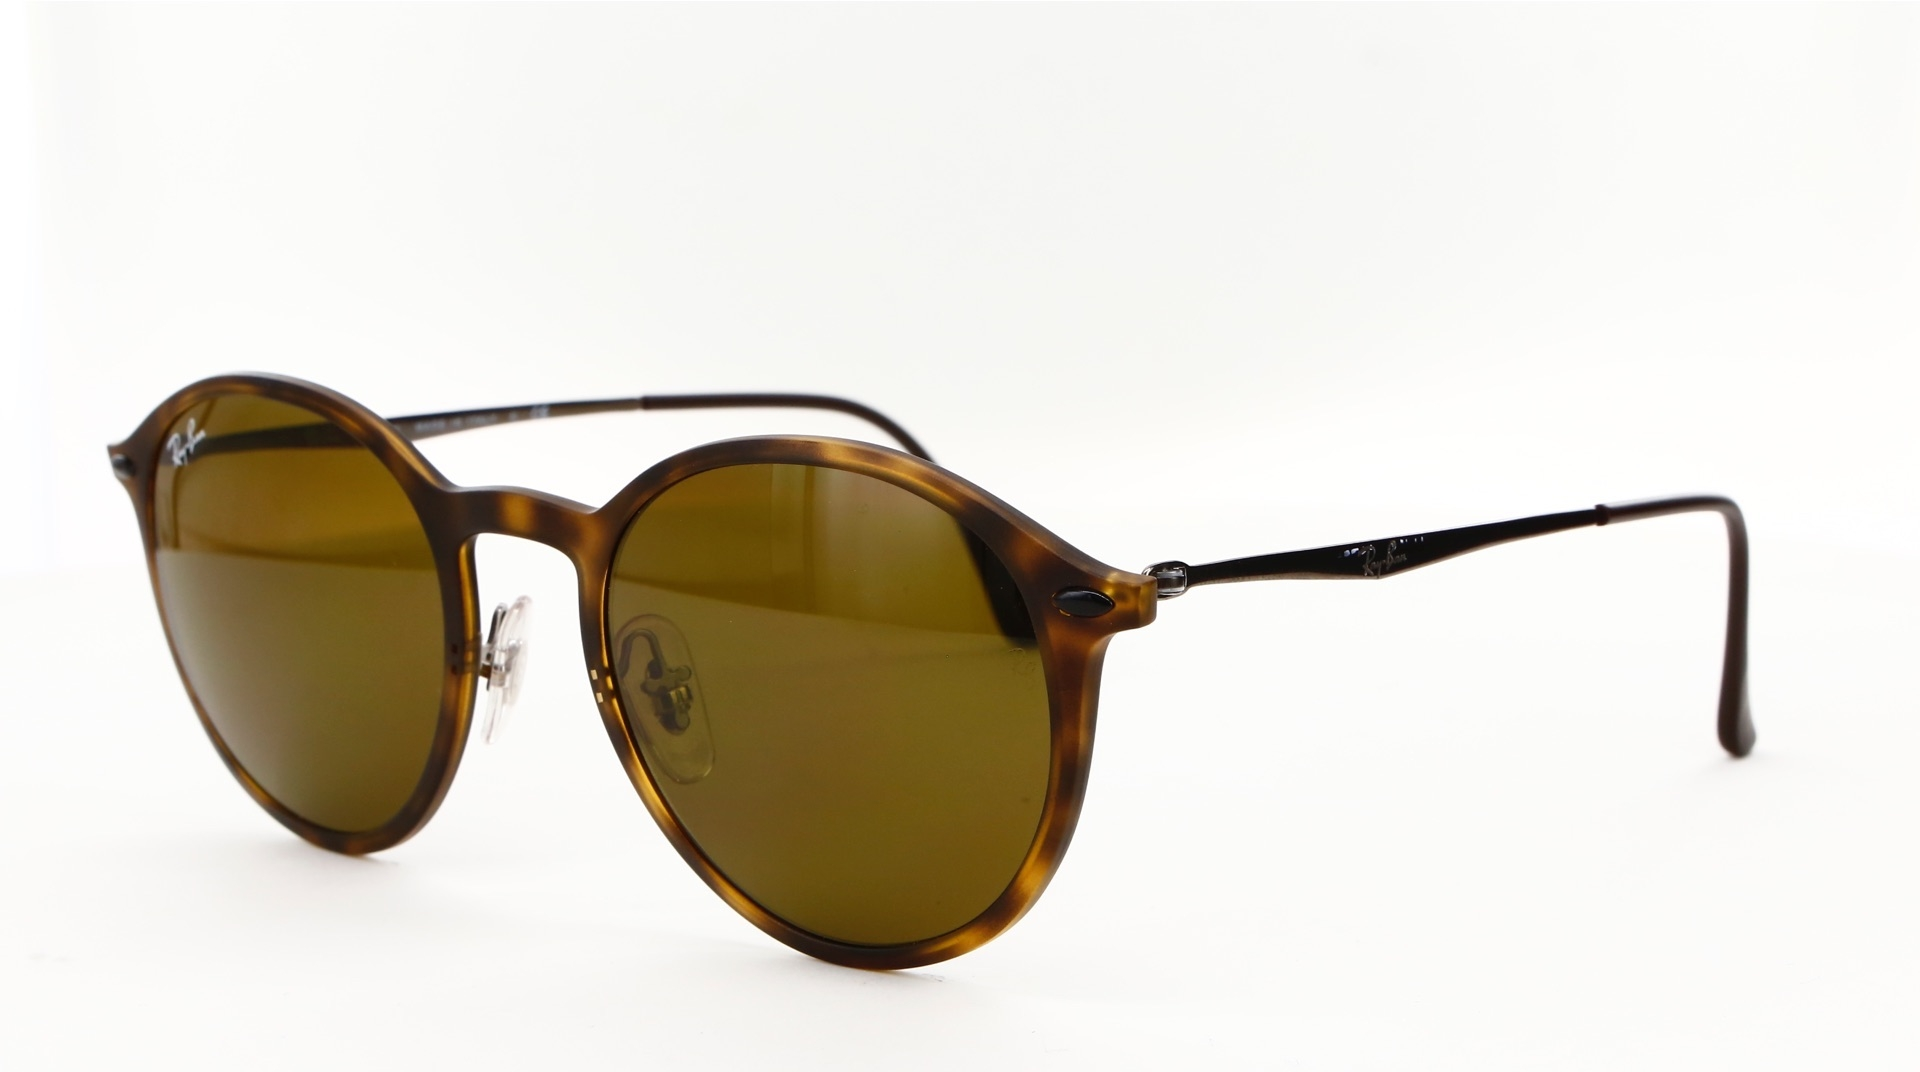 Ray-Ban - ref: 74783